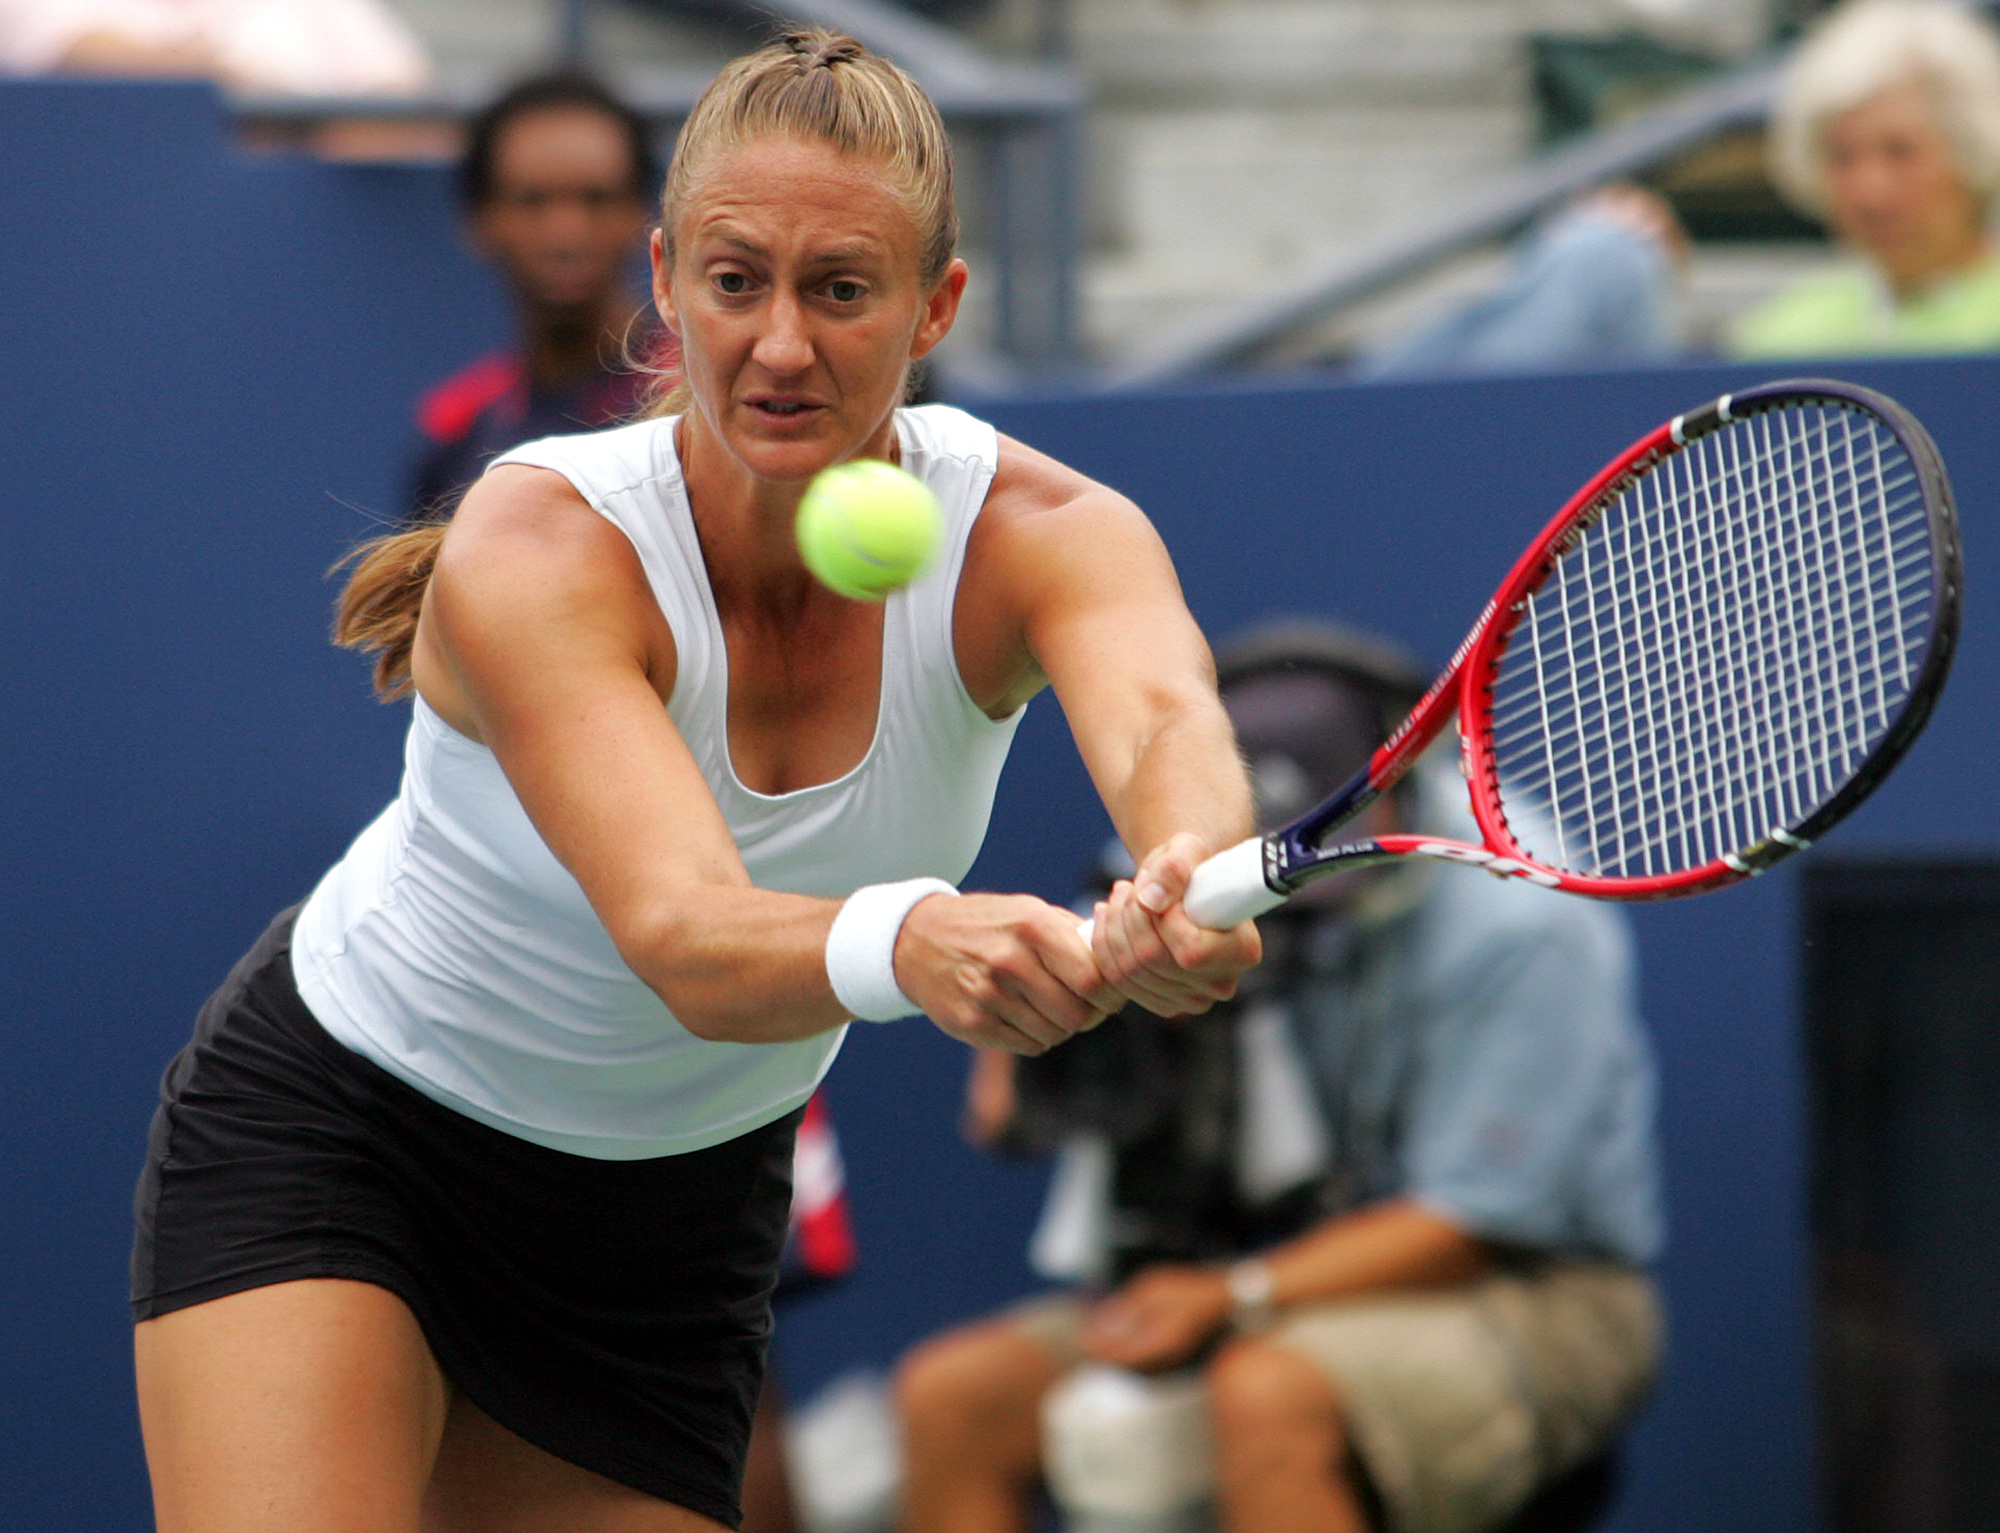 Mary Pierce of France returns a shot to Elena Vesnina of Russia at the US Open tennis tournament in New York, Wednesday, Aug. 30, 2006. (AP Photo/Ed Betz)